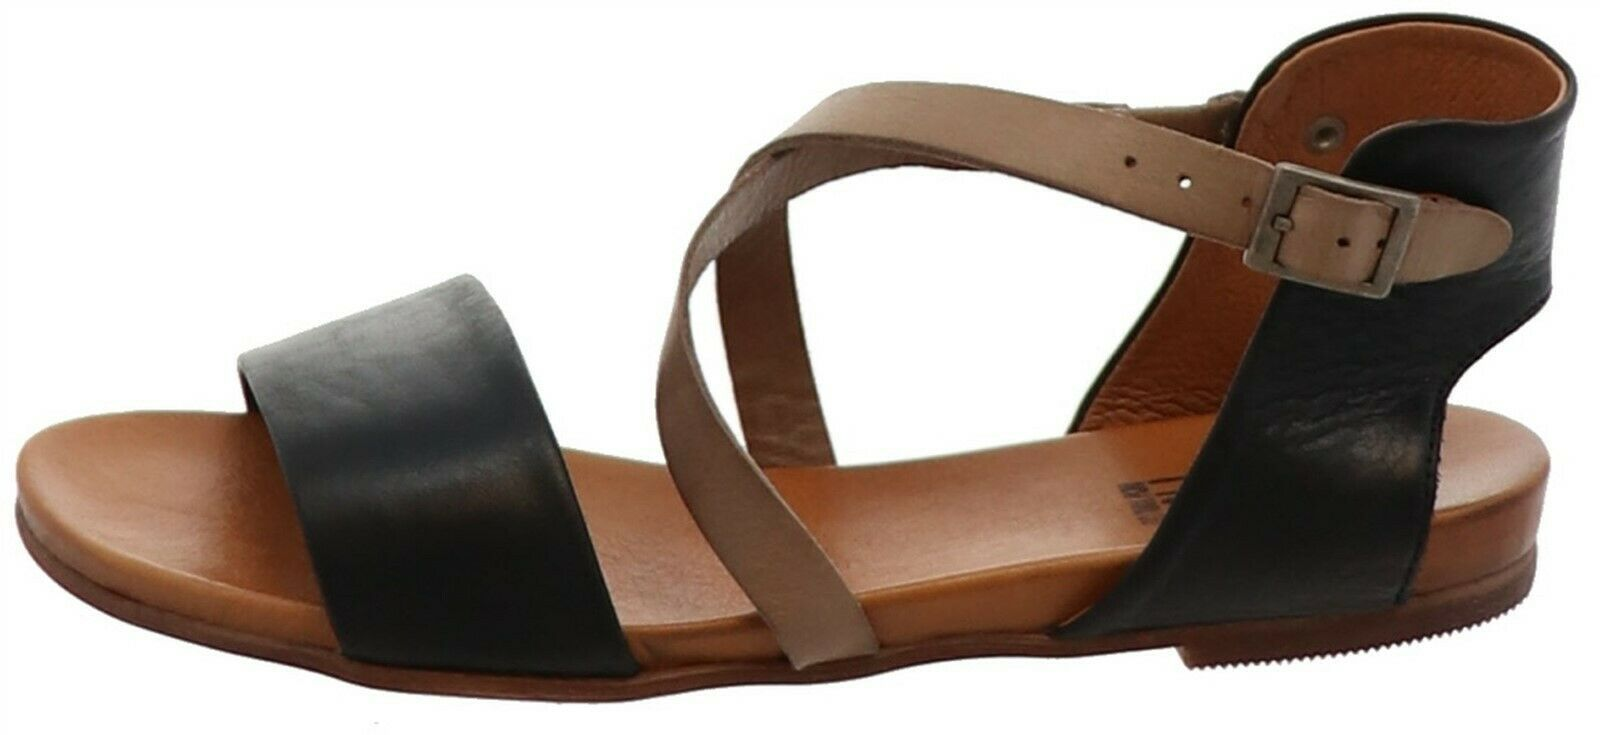 Primary image for Miz Mooz Leather Cross Strap Sandals Amanda Black EU41(US9.5-10) NEW A304340